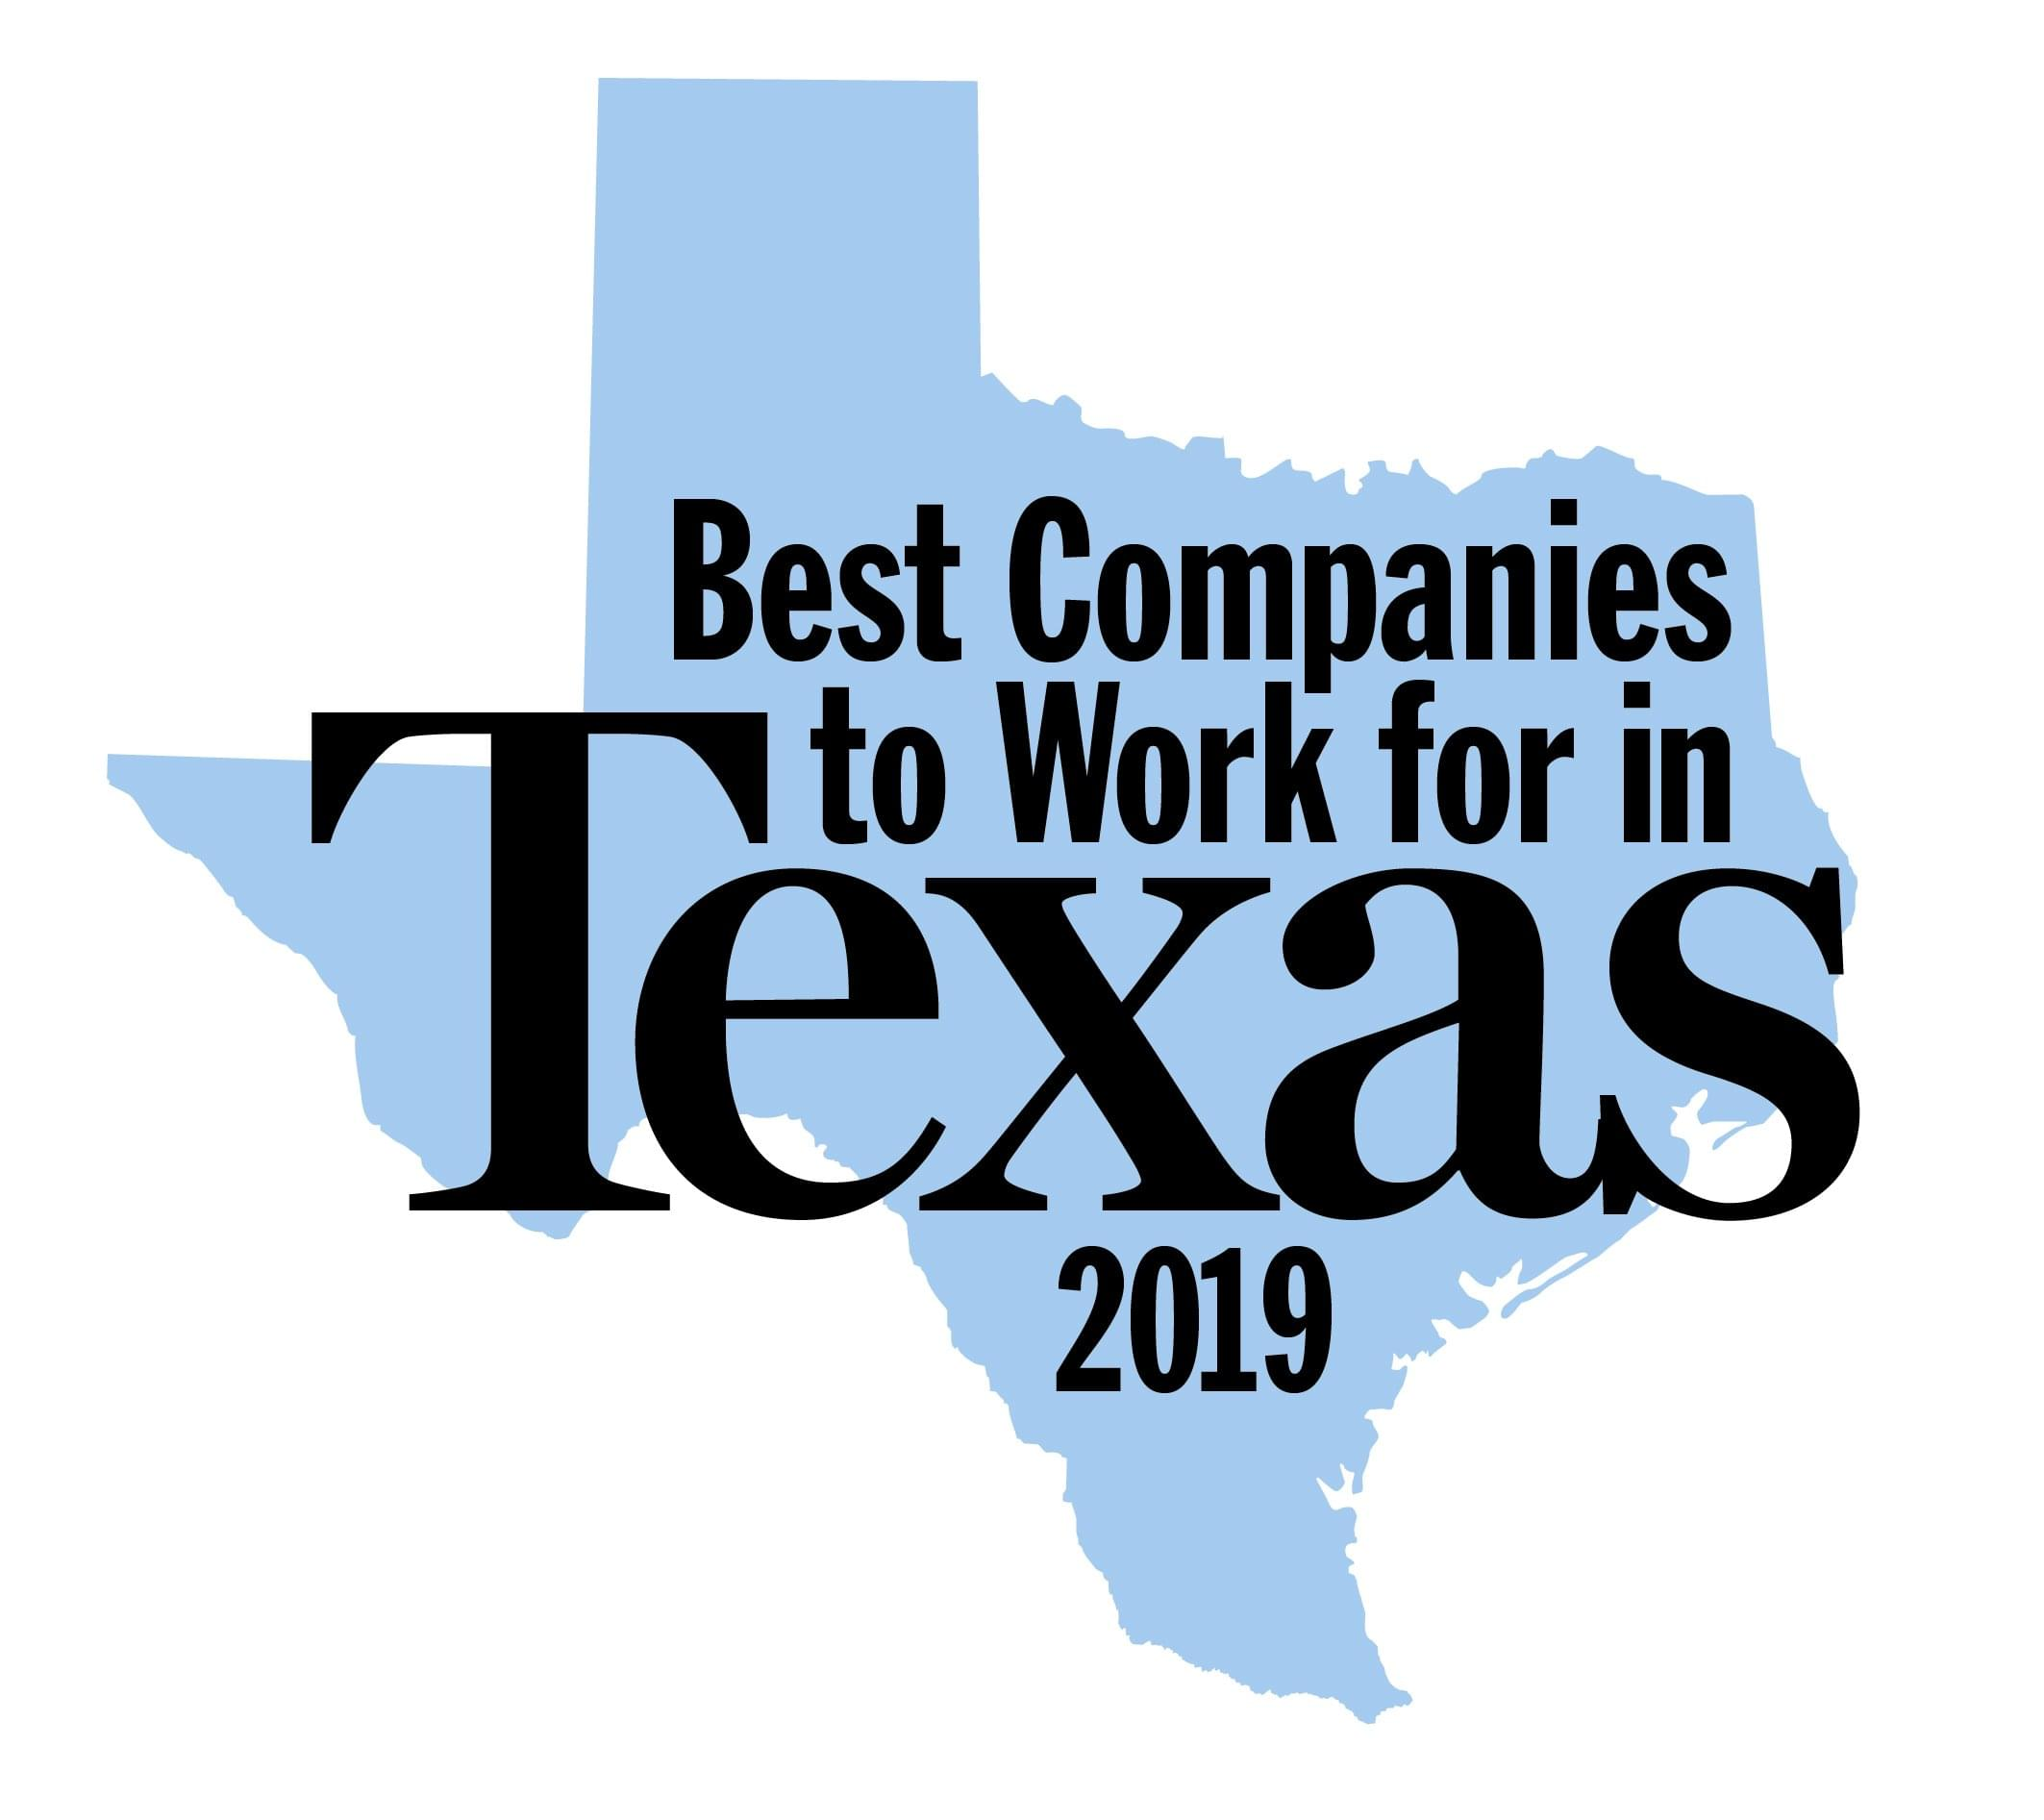 Best Companies to Work for in Texas - 2019